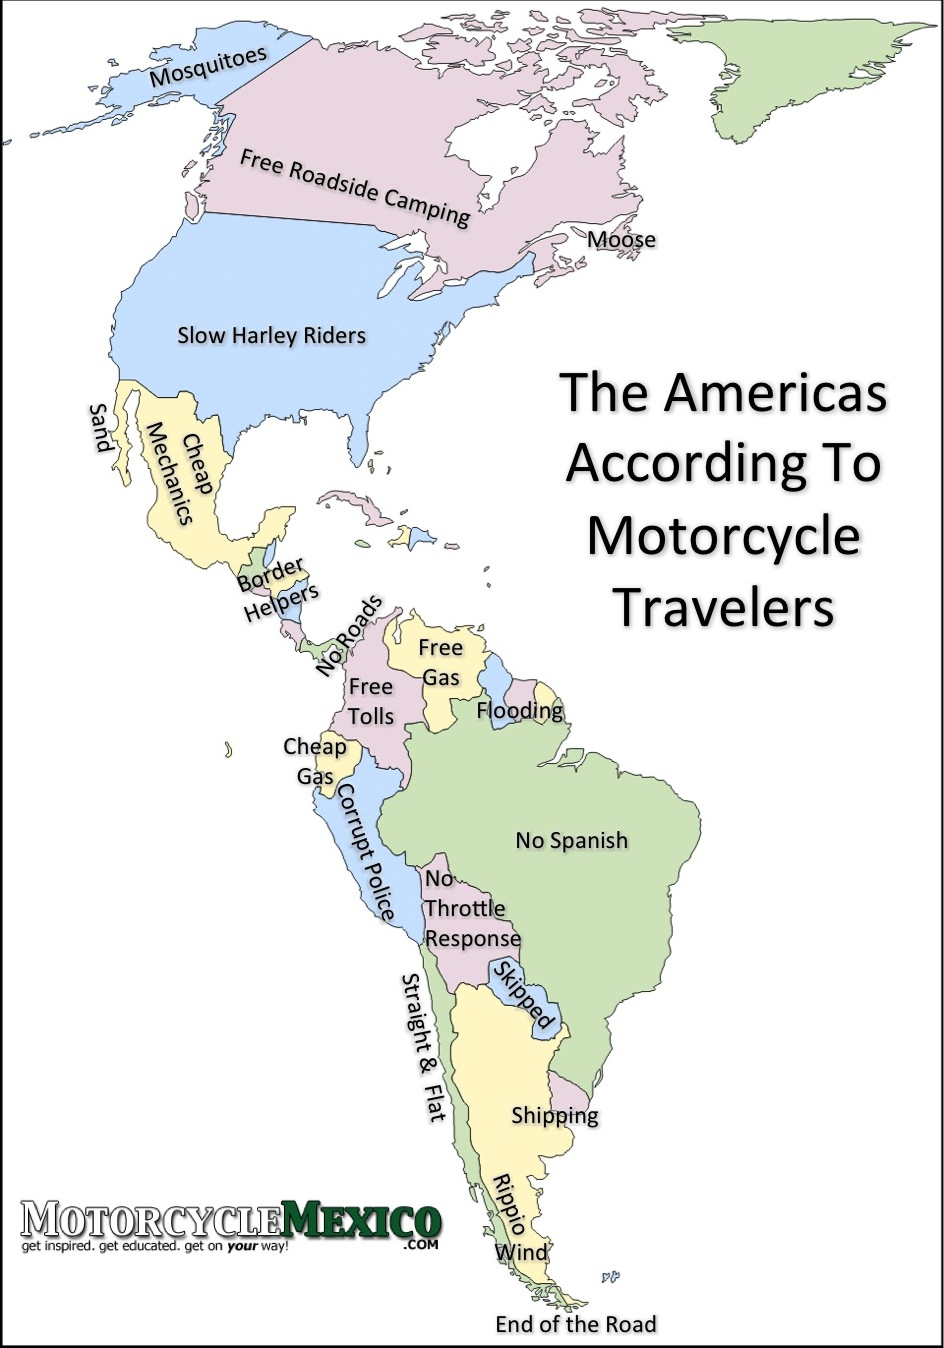 The Americas According To Motorcycle Travelers